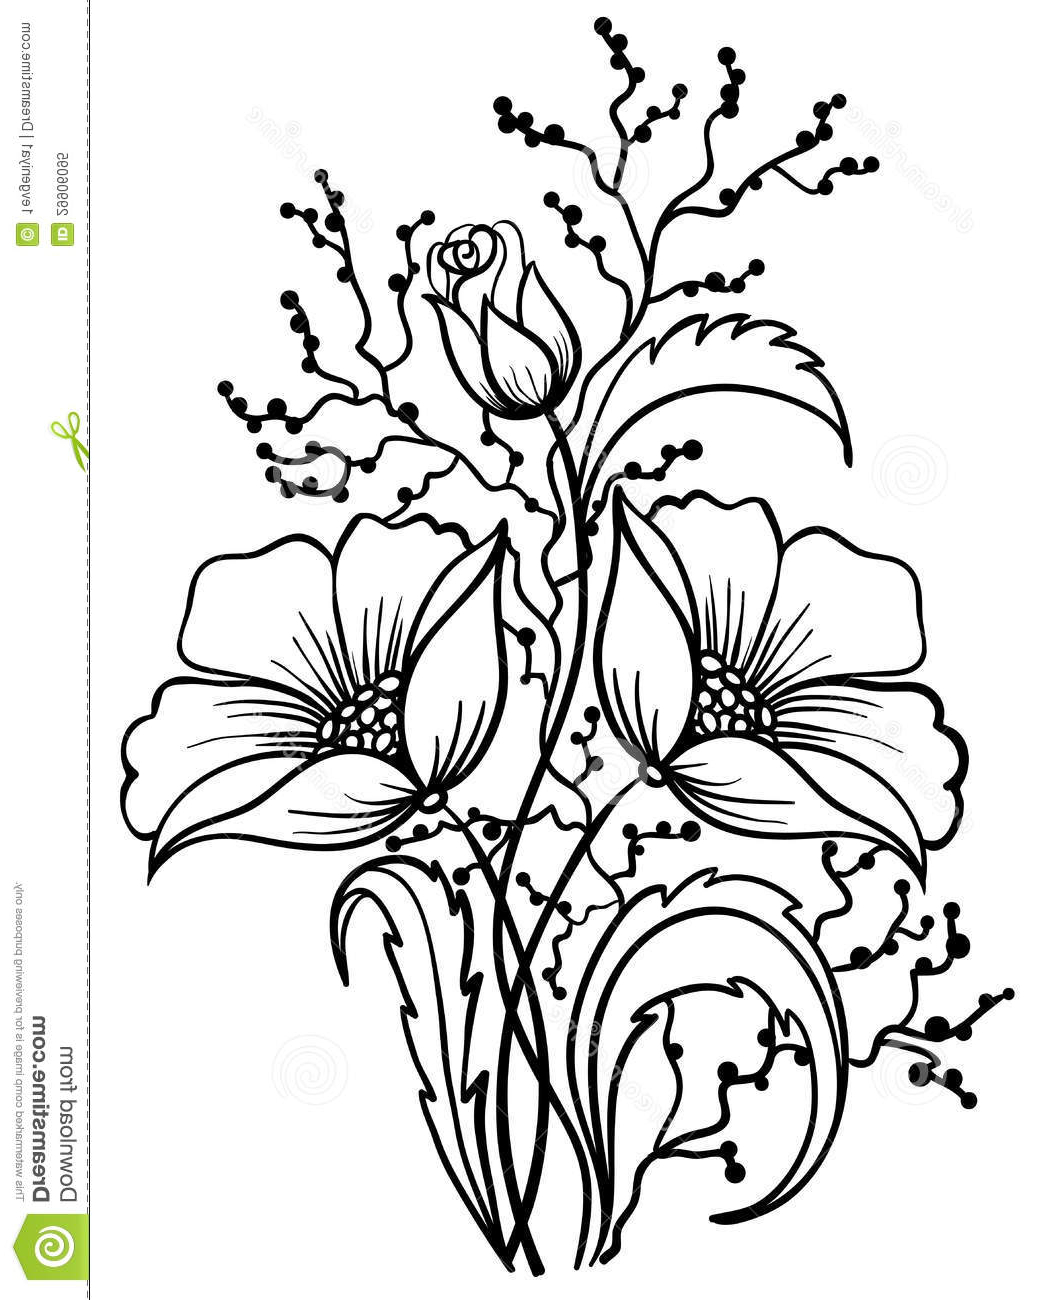 Black And White Pictures Of Flowers To Draw Free Download Best